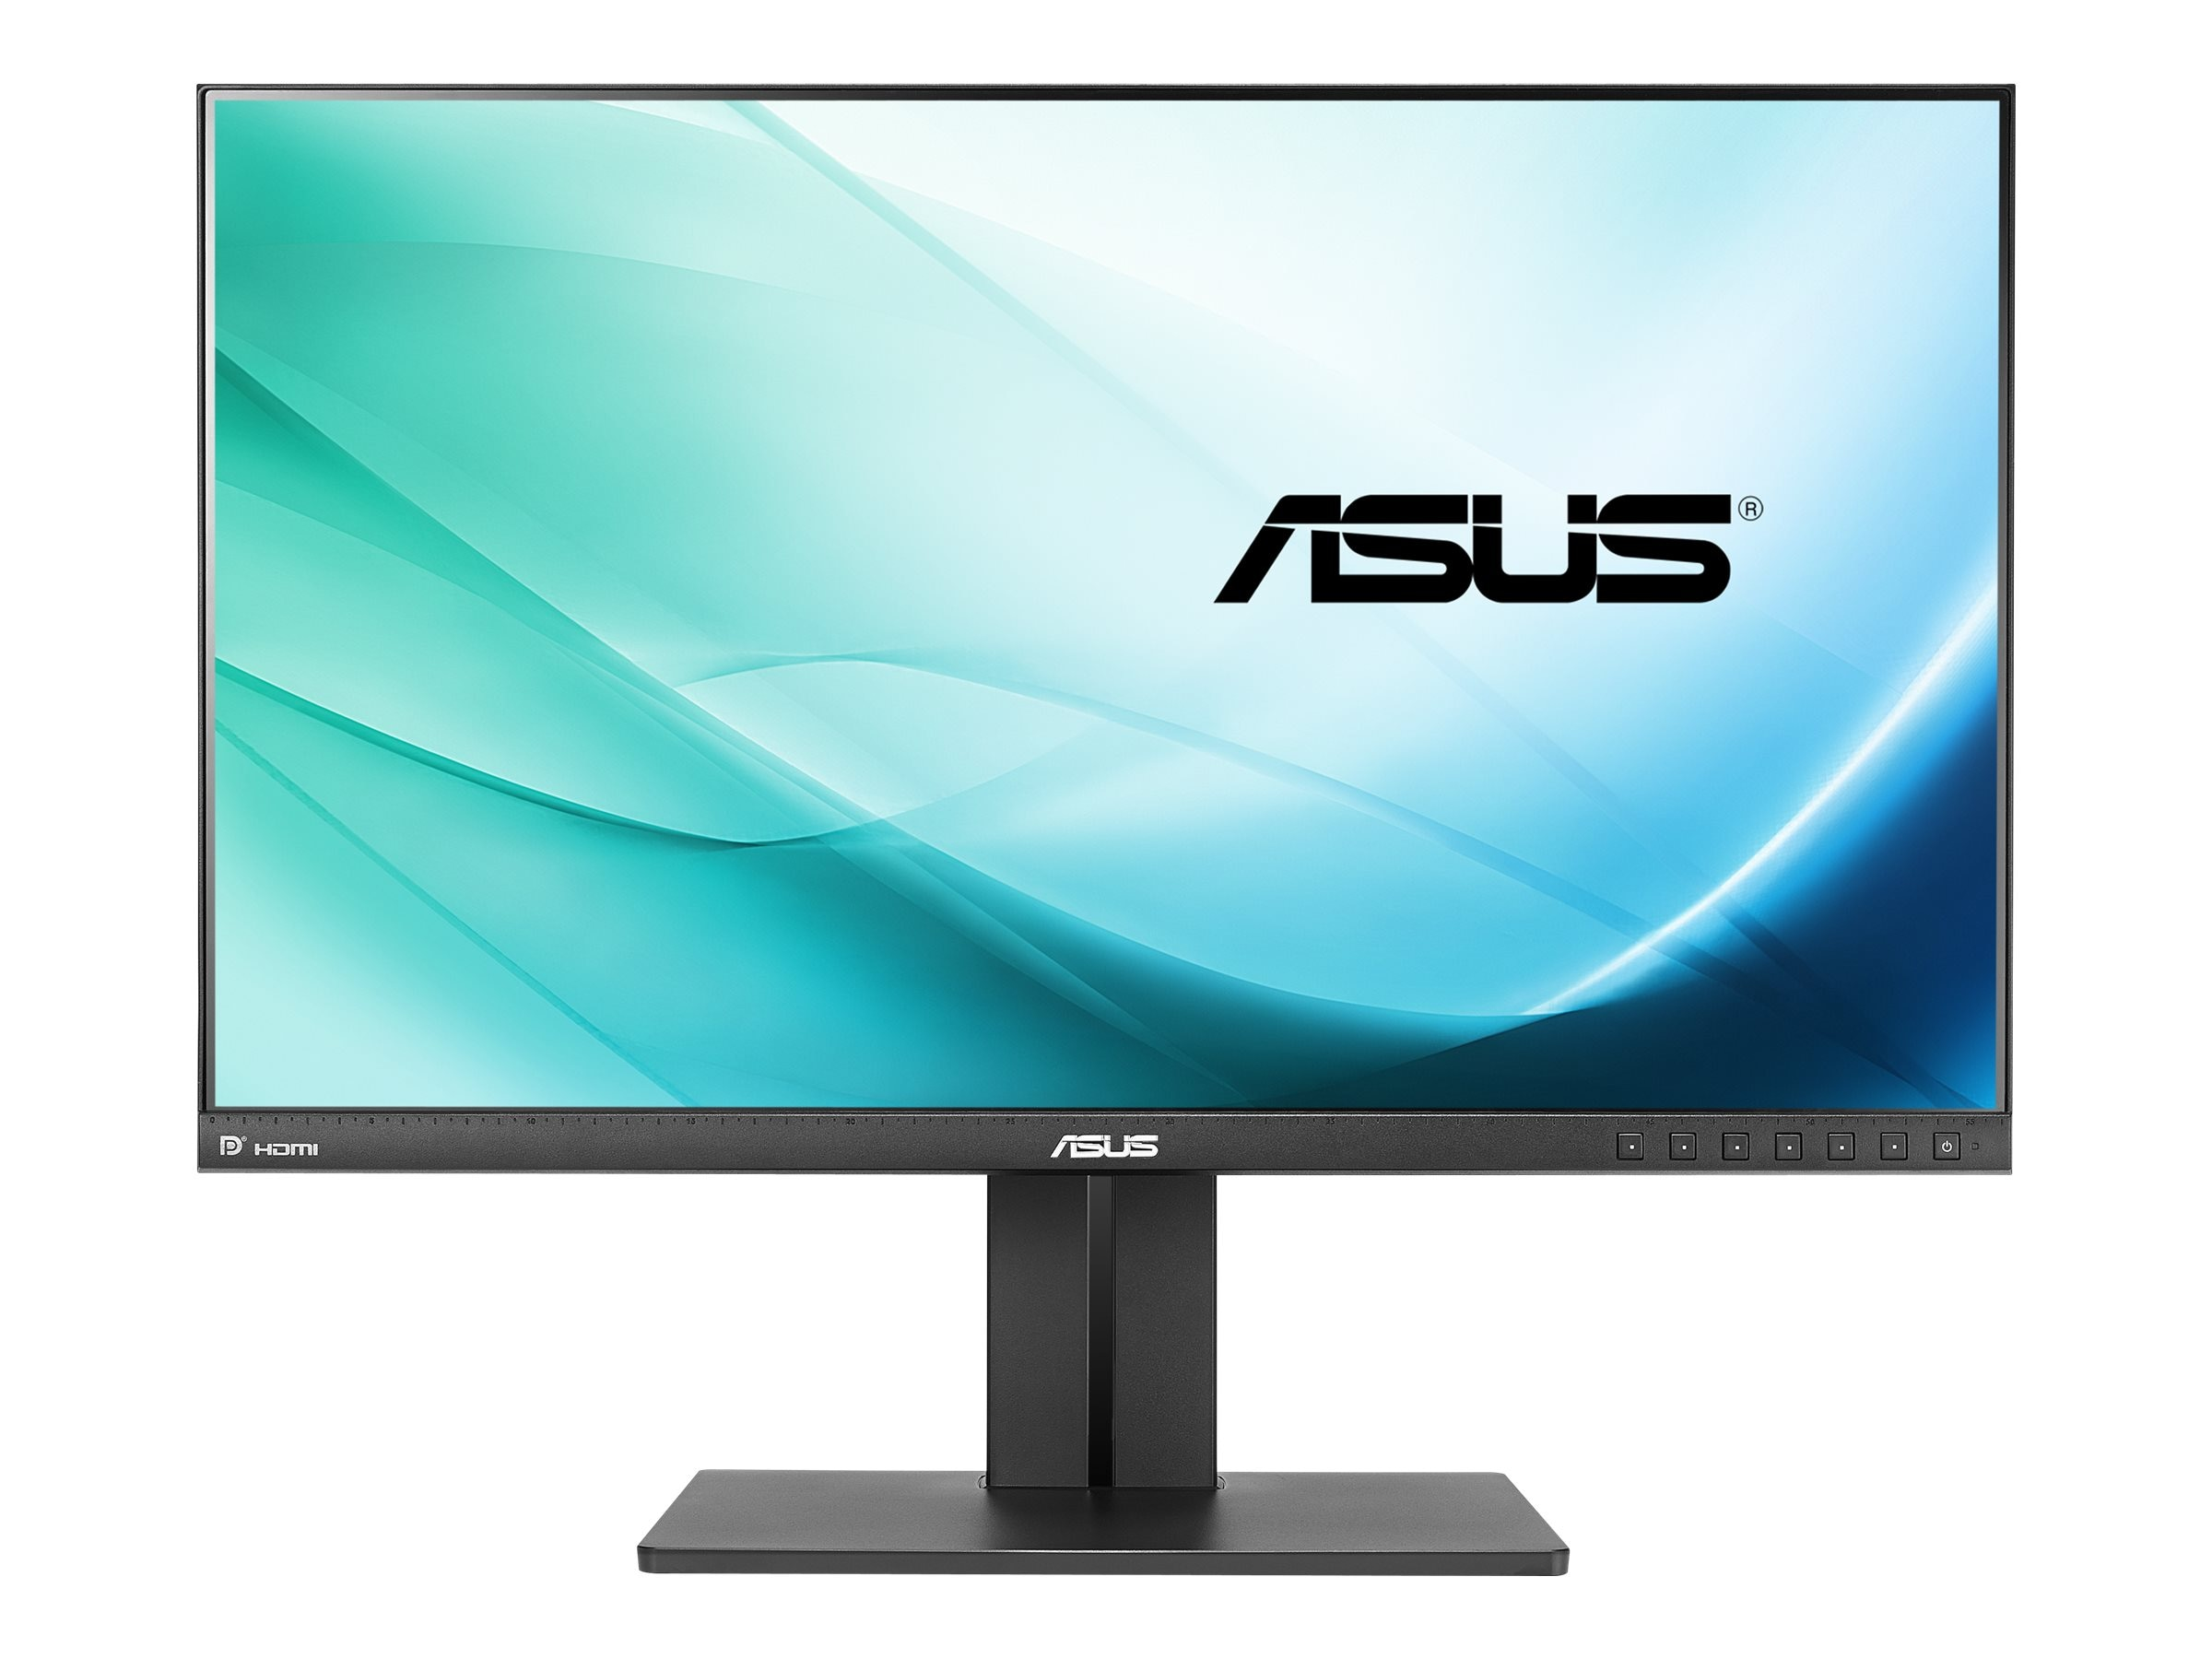 Asus 25 PB258Q WQHD LED-LCD Frameless Monitor, Black, PB258Q, 19507063, Monitors - LED-LCD